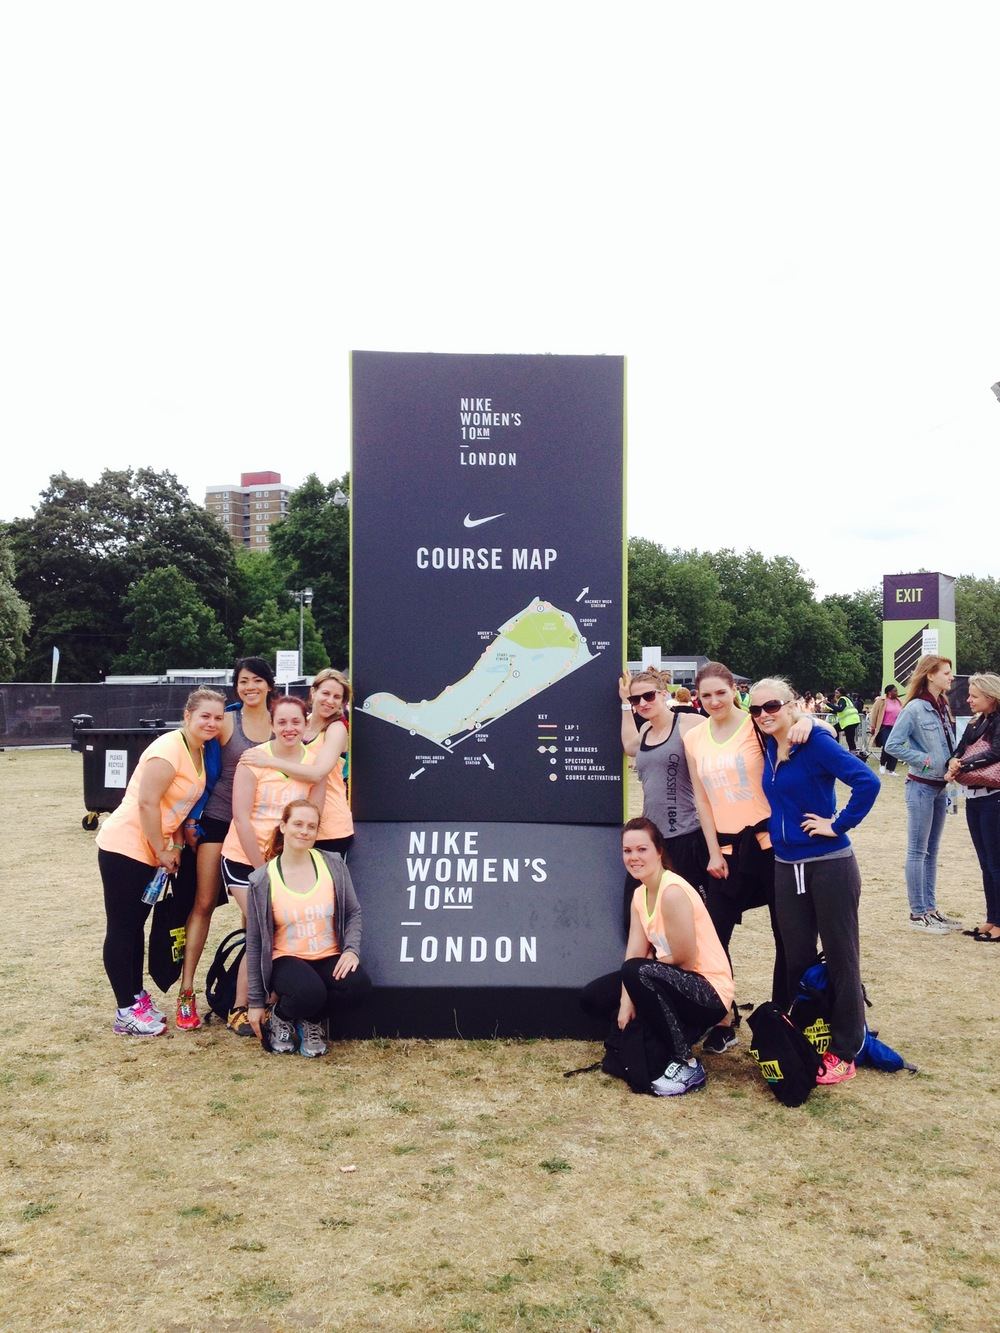 The crew after the Nike Women's 10k